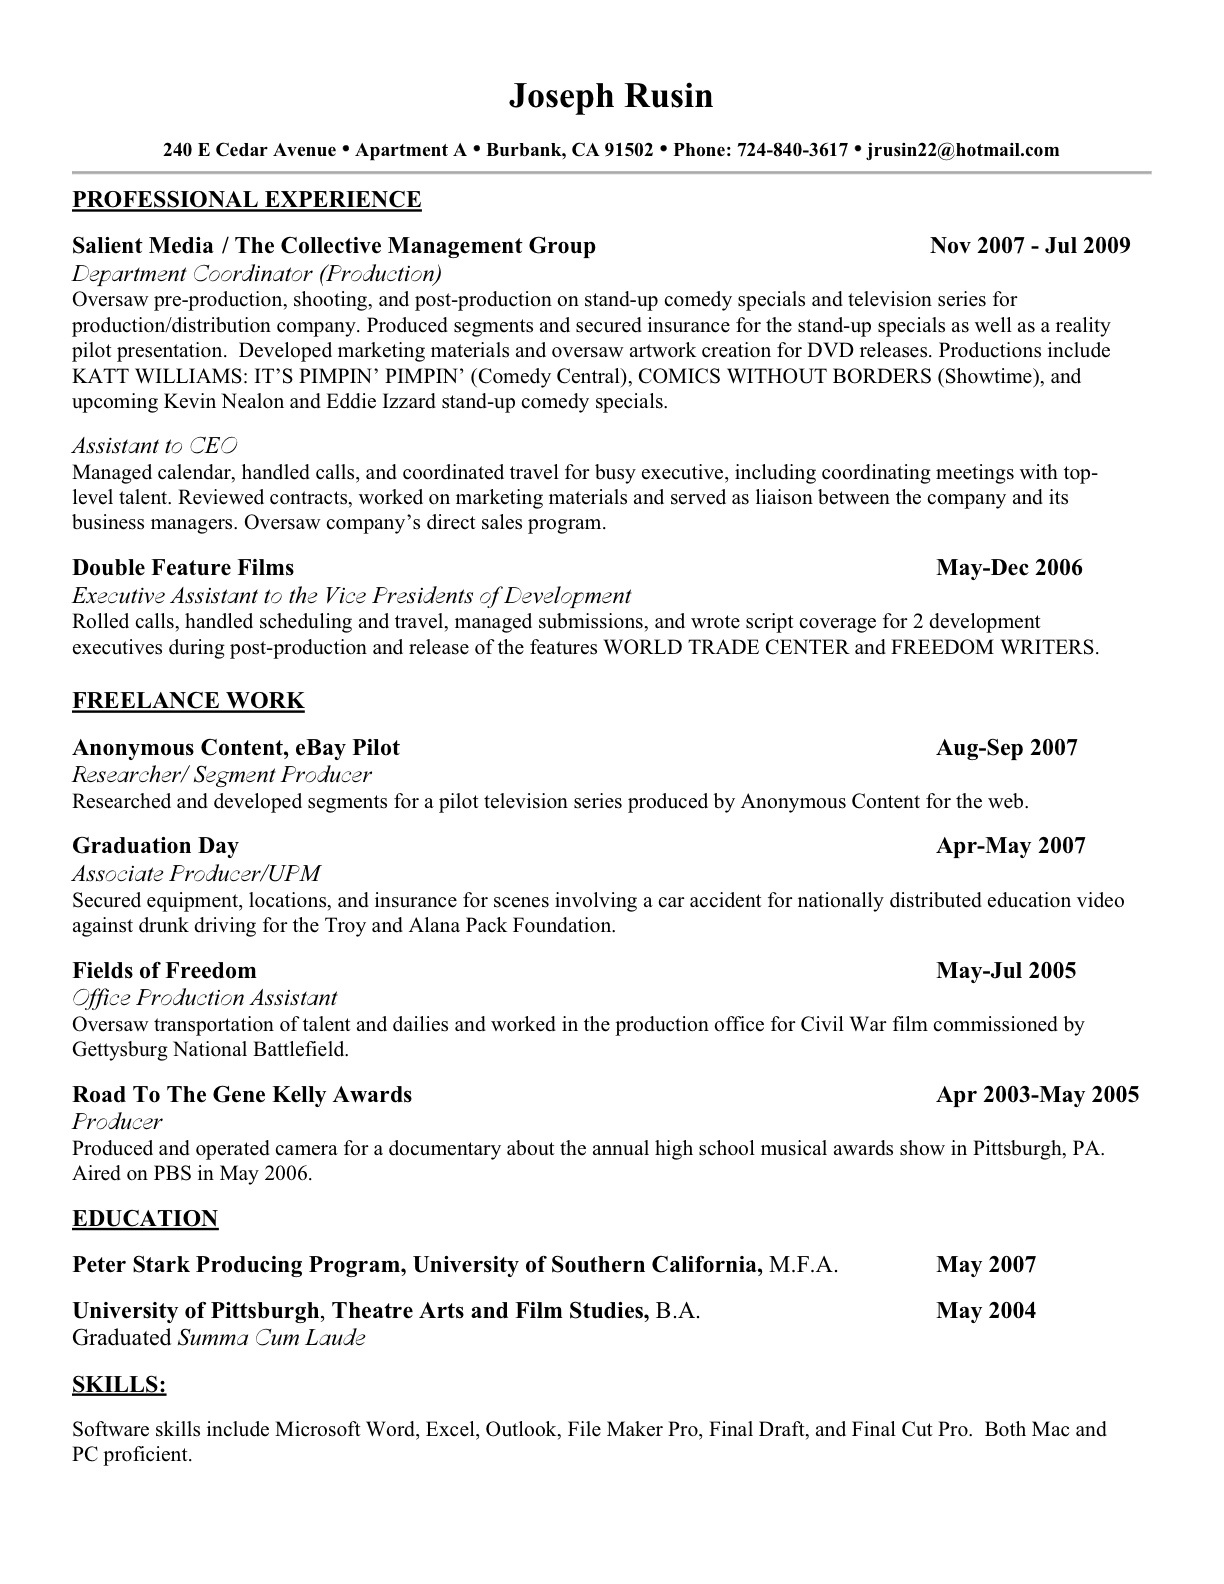 Build My Resume Help Making My Resume How Do I Make A Resume On My